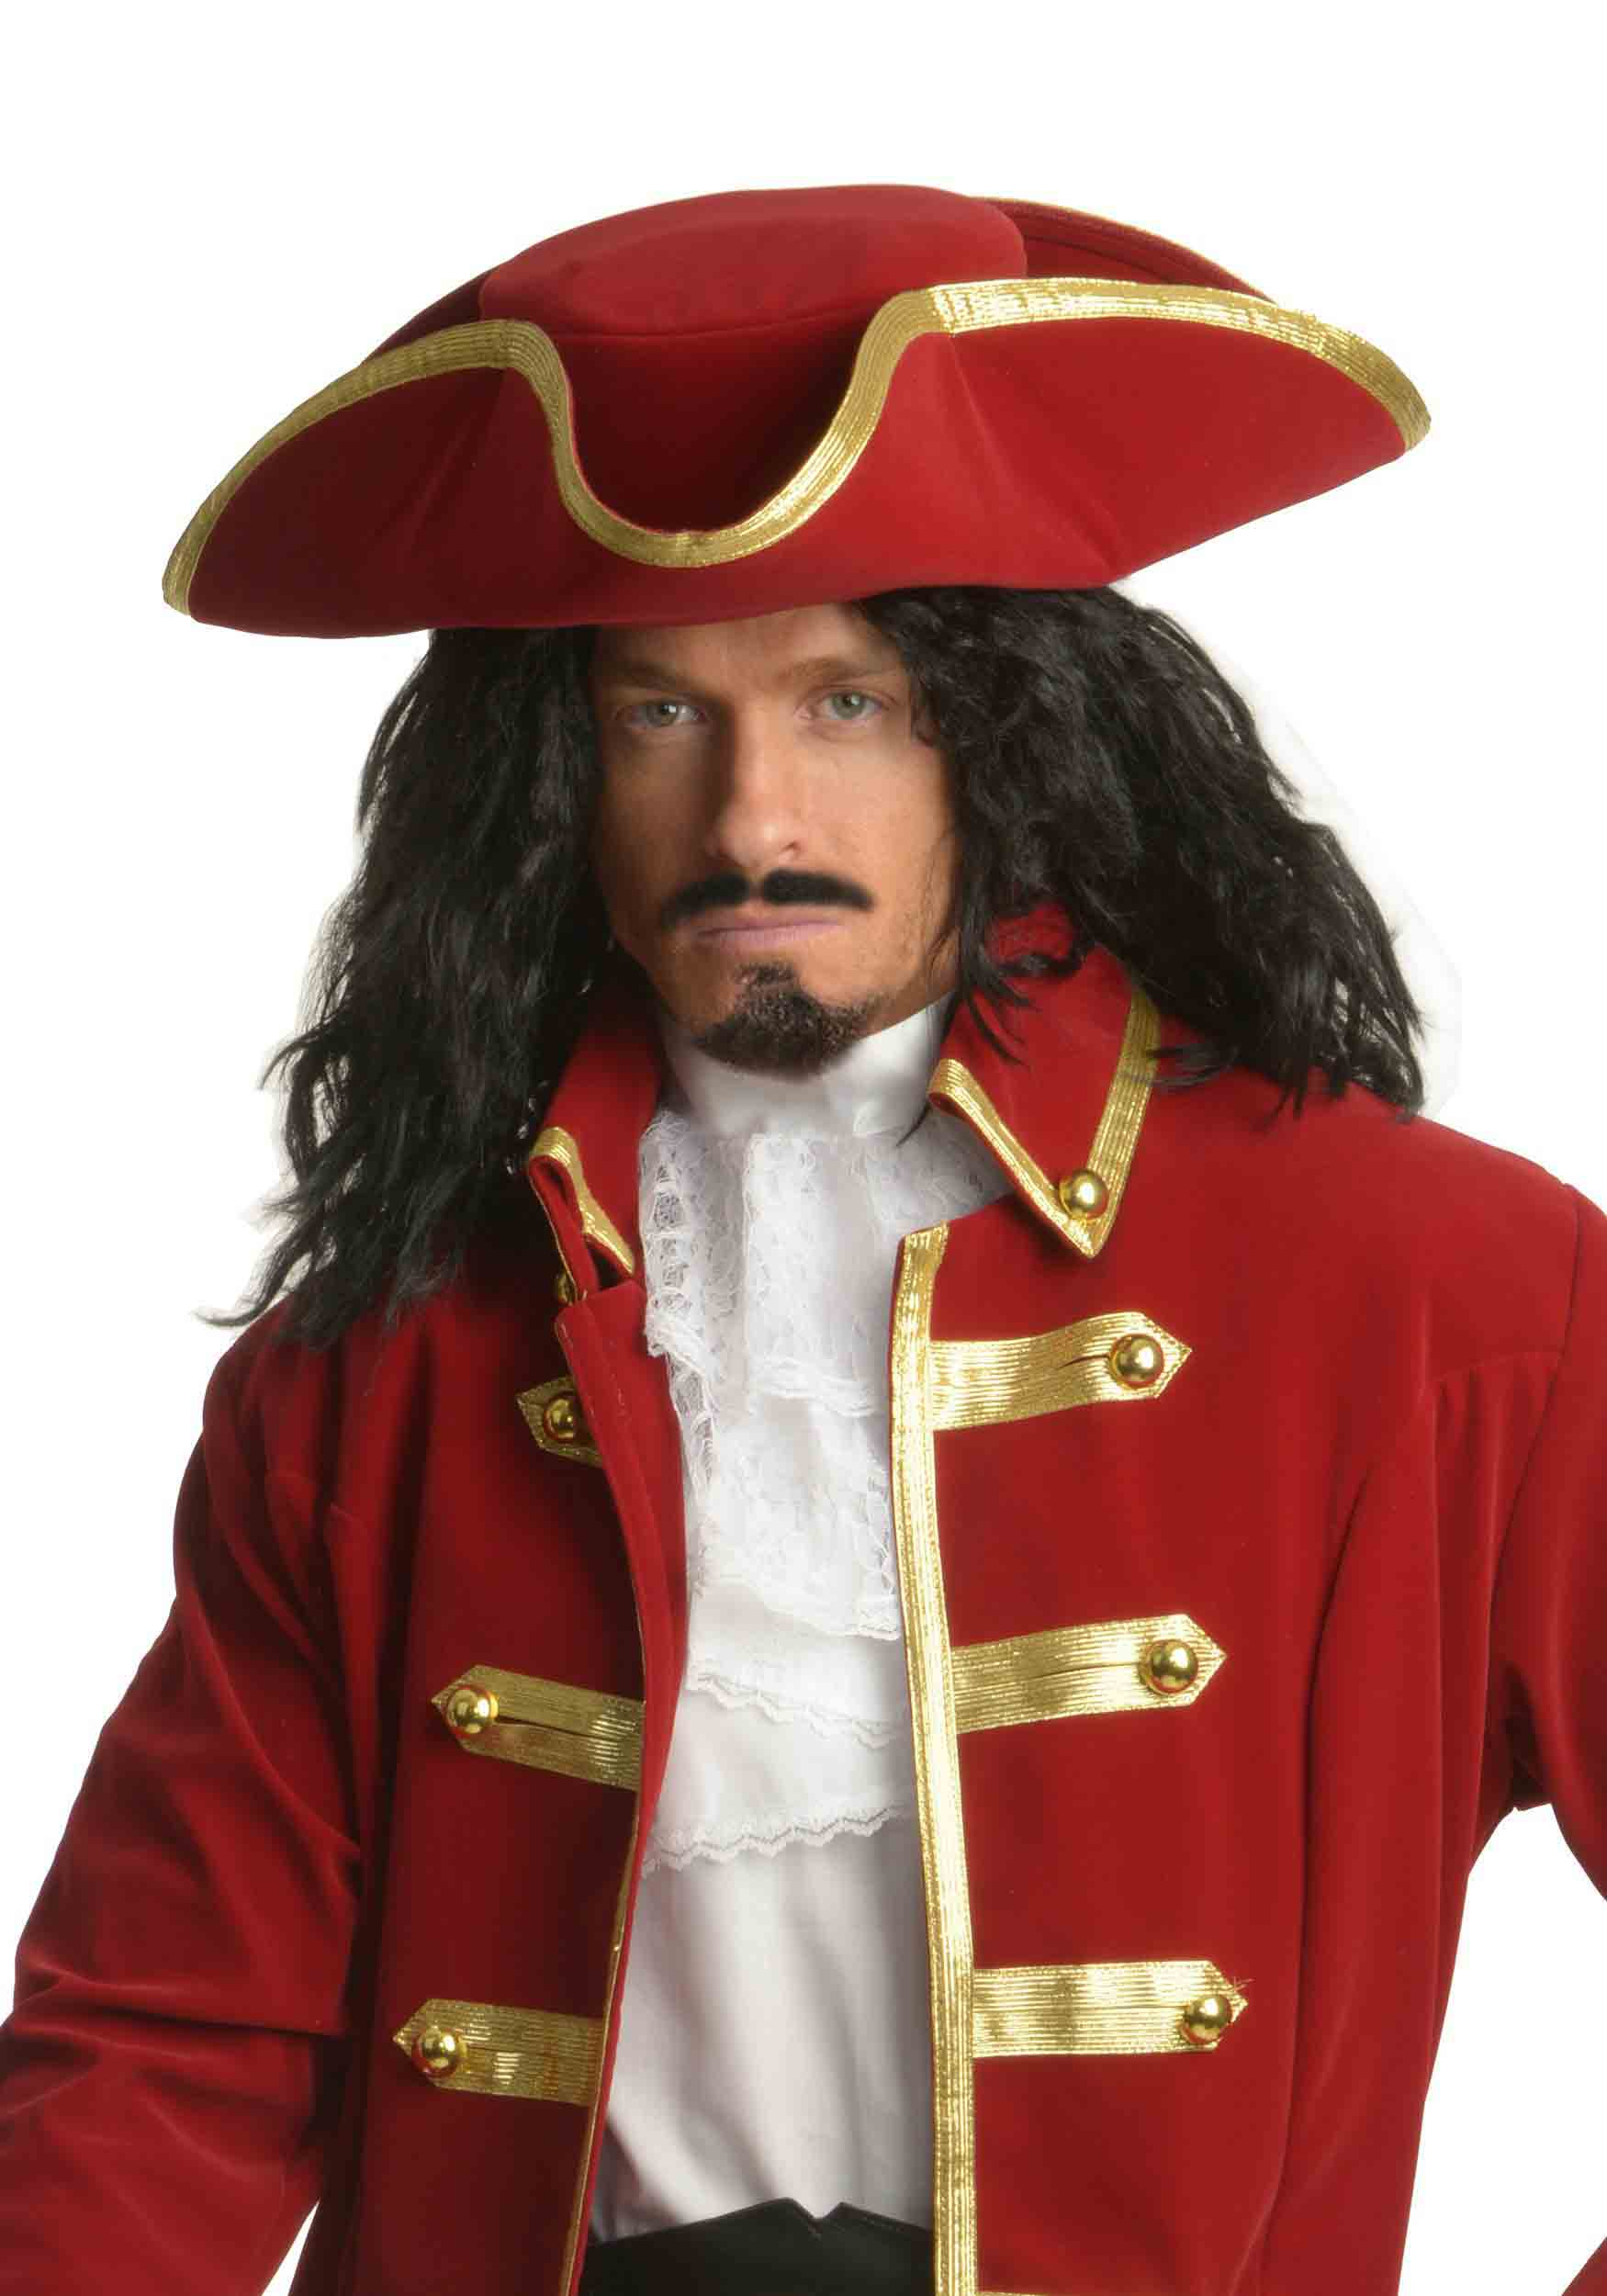 pirate halloween costume ideas for men with long hair